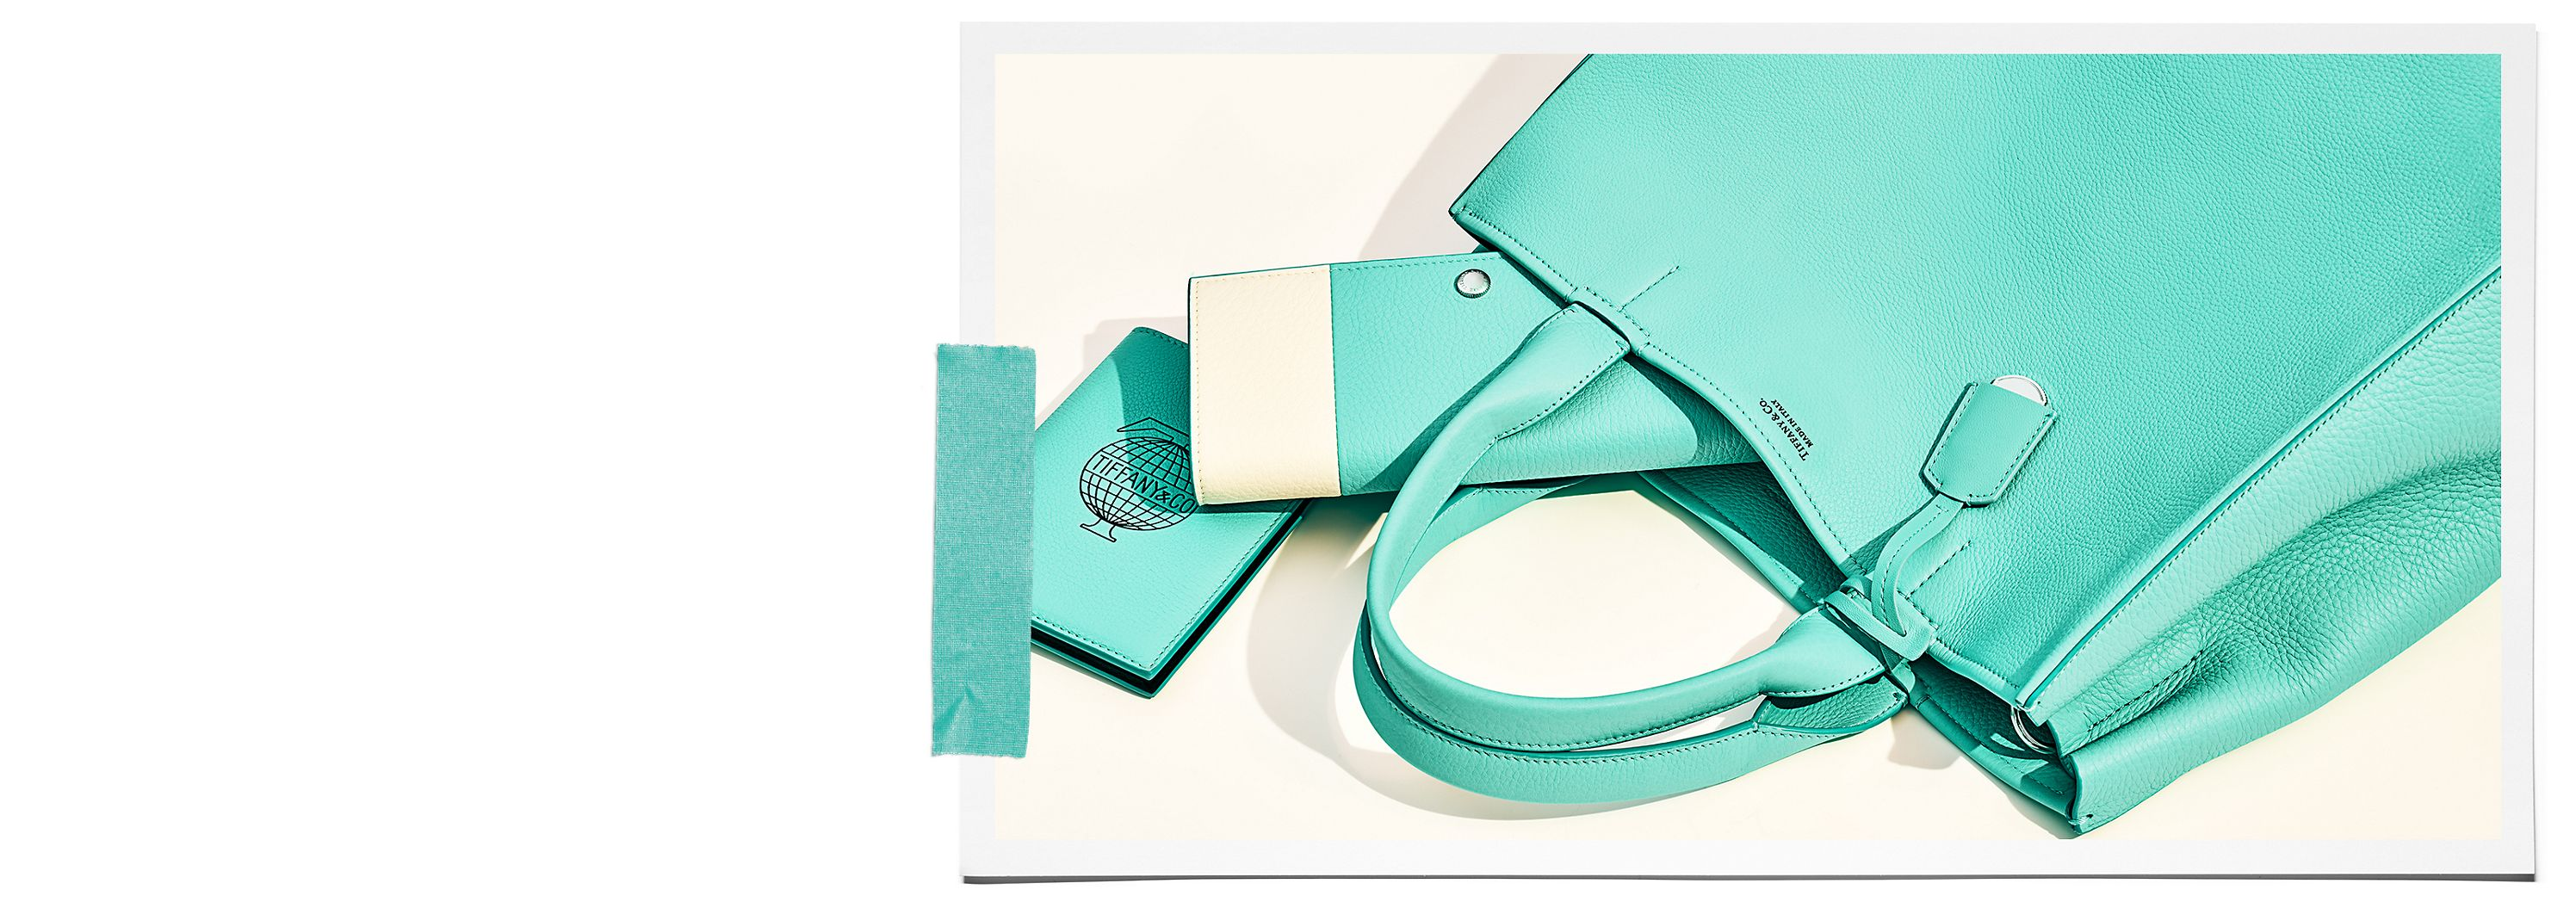 Tiffany & Co. Responsibly Sourced Materials